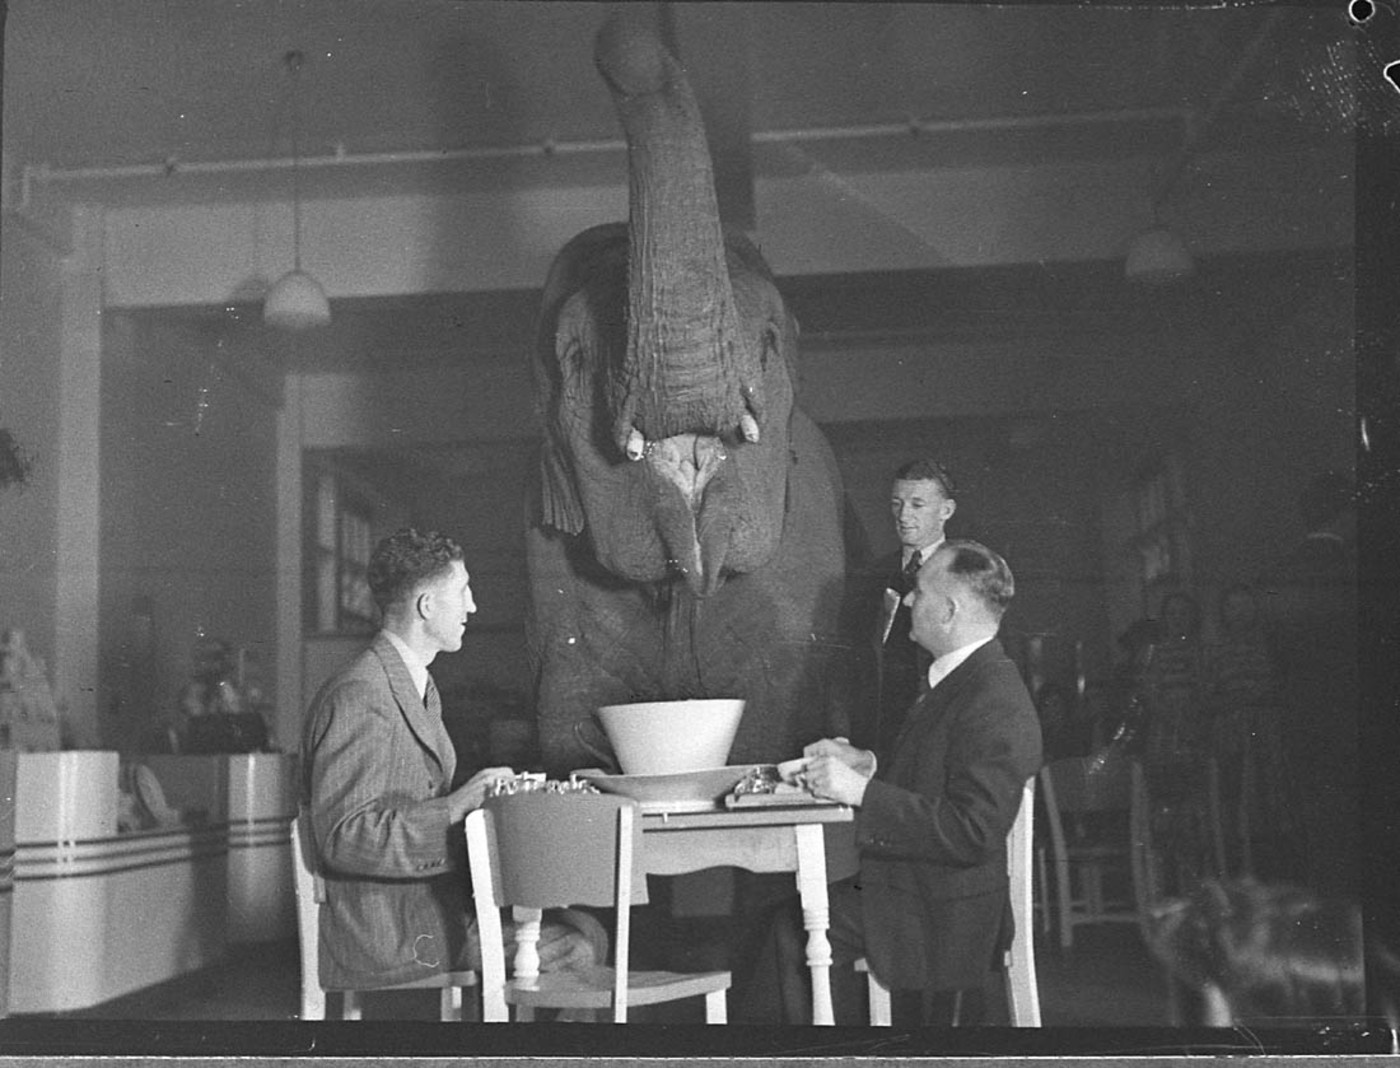 Harry Targ : Foreign policy: The elephant in the room | The Rag Blog